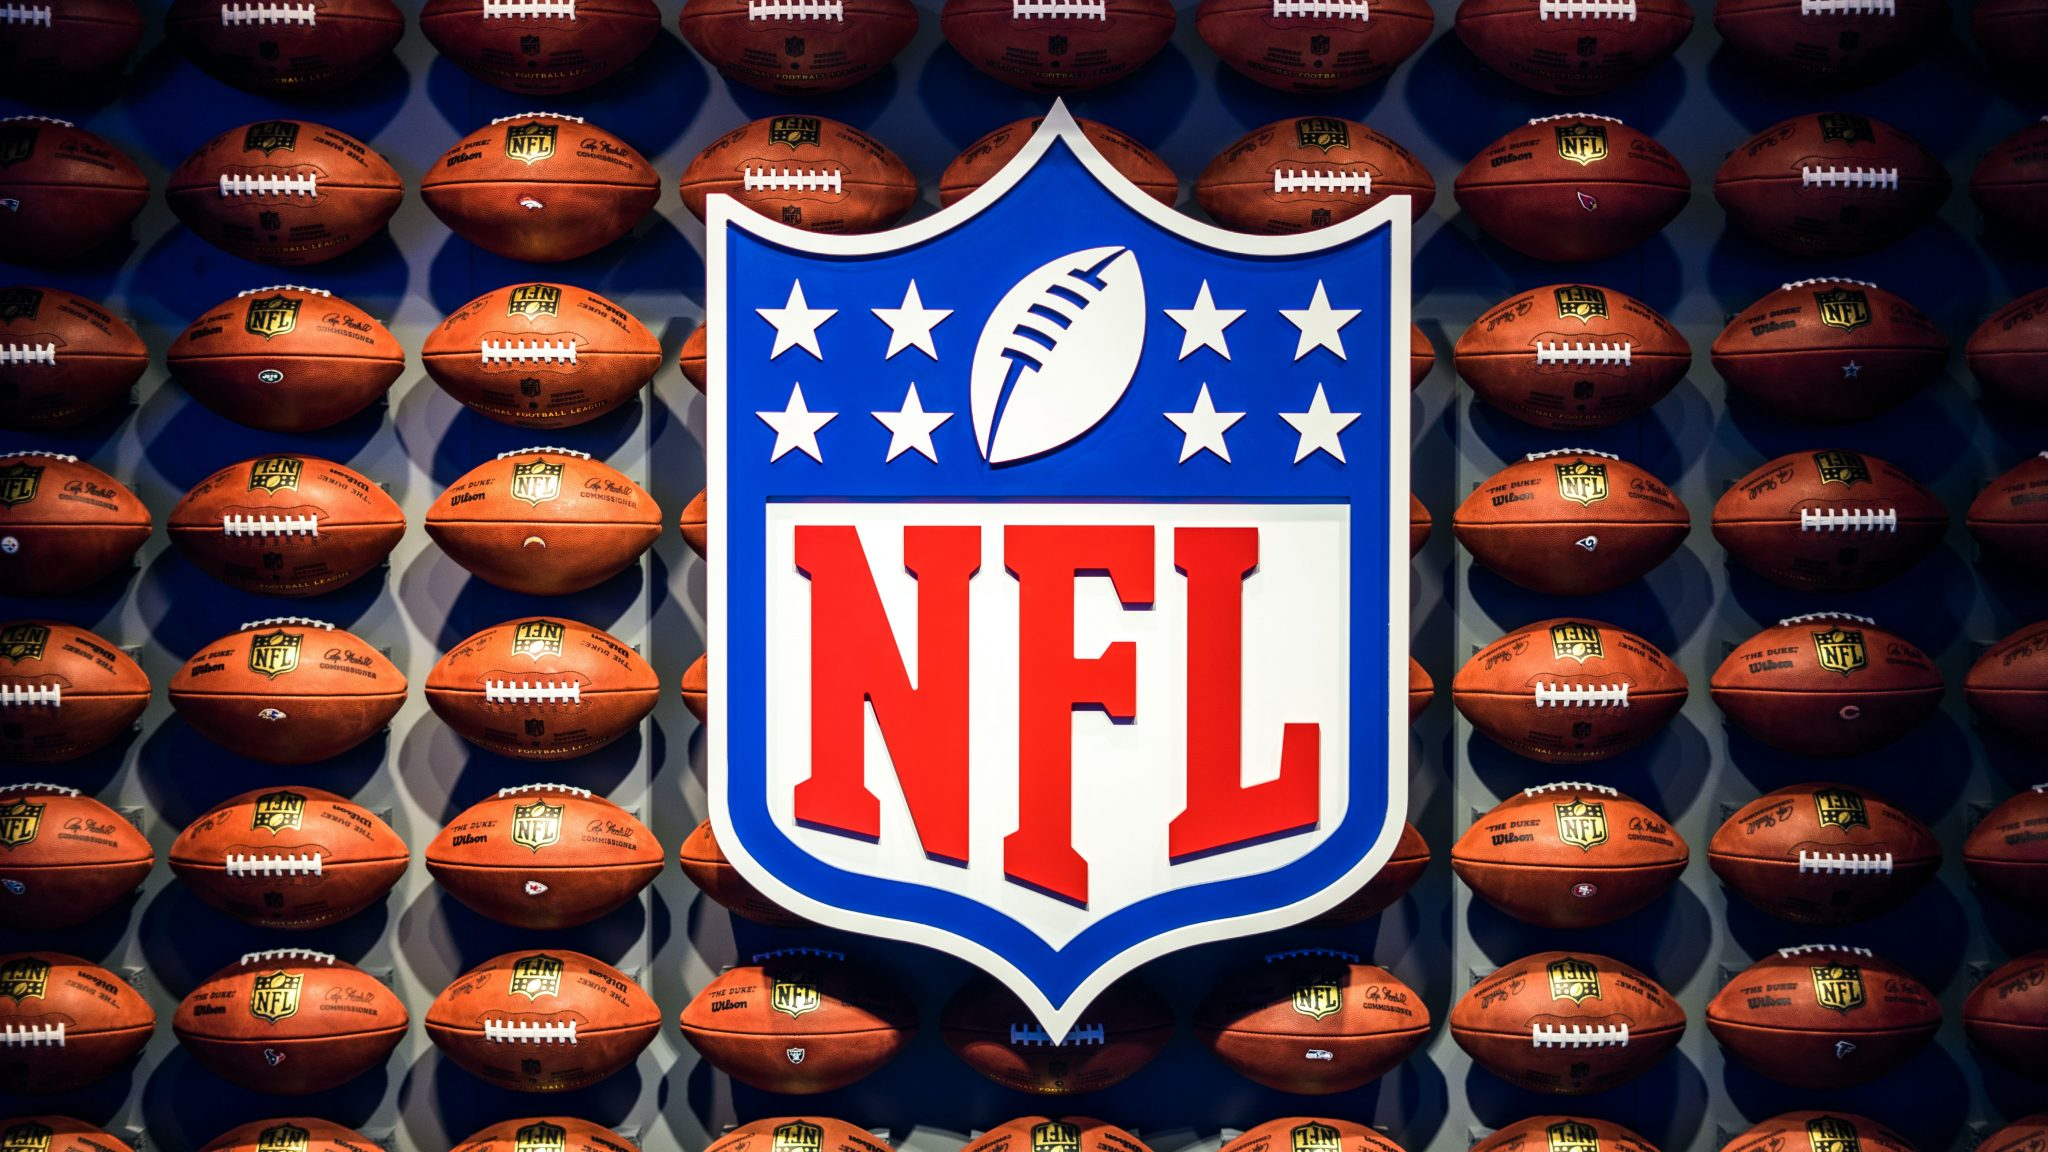 NFL logo surrounded by footballs.